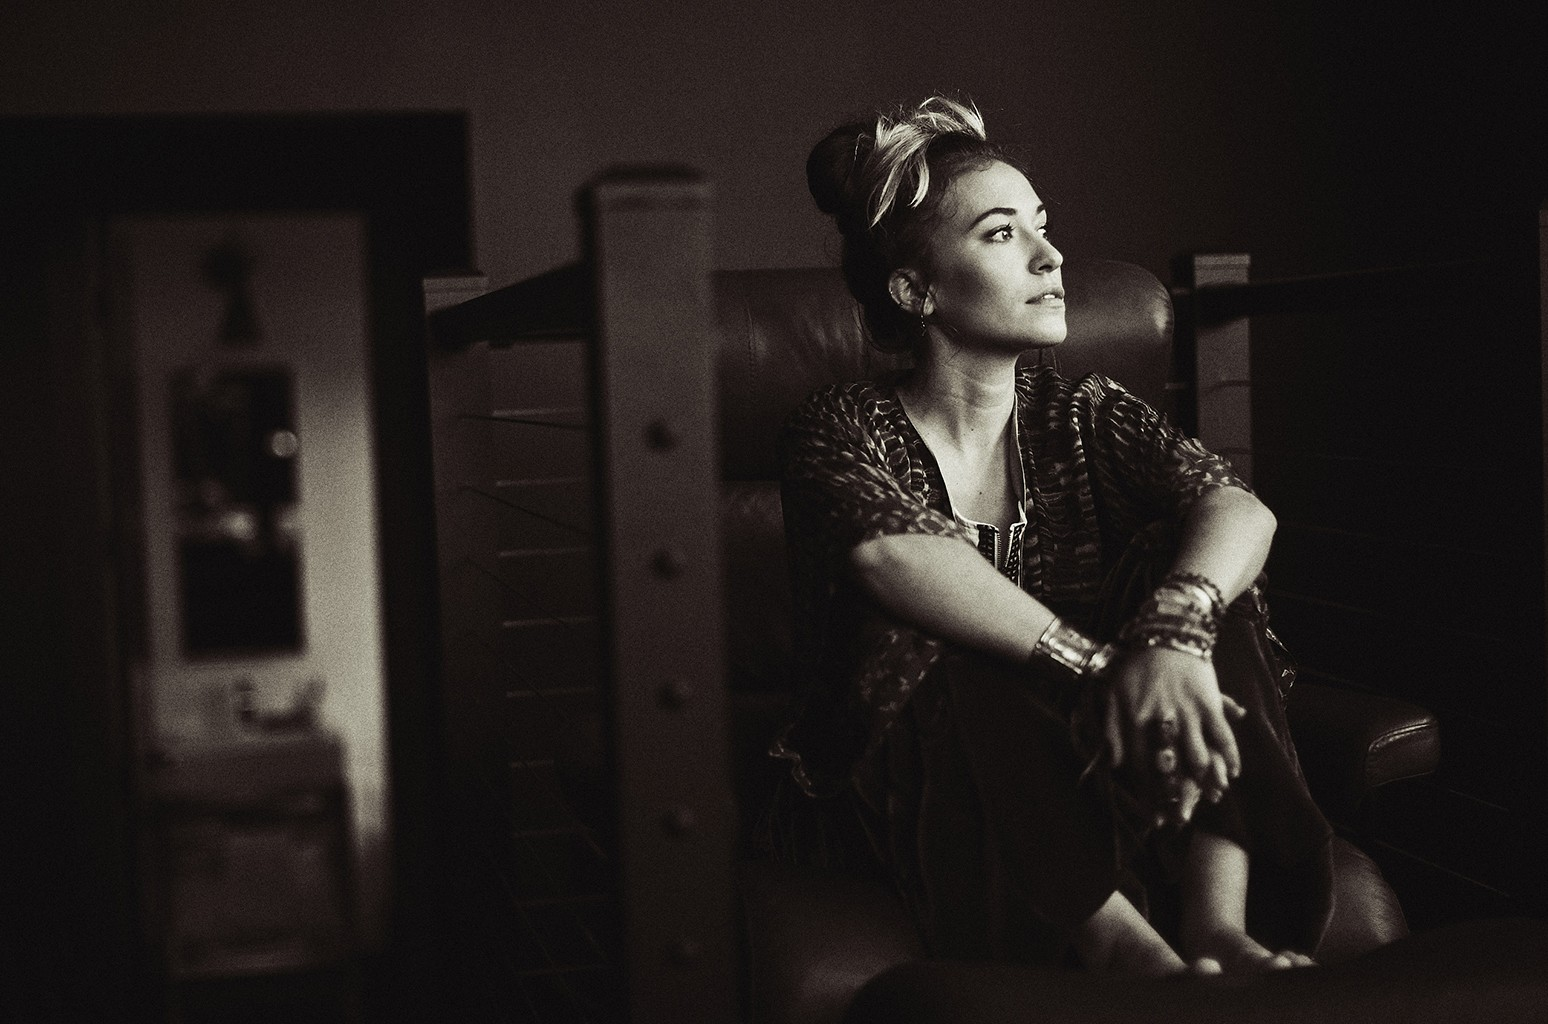 WATCH: Lauren Daigle Gives Her Thoughts on Death of George Floyd After Being Called Out by Her Black Friends